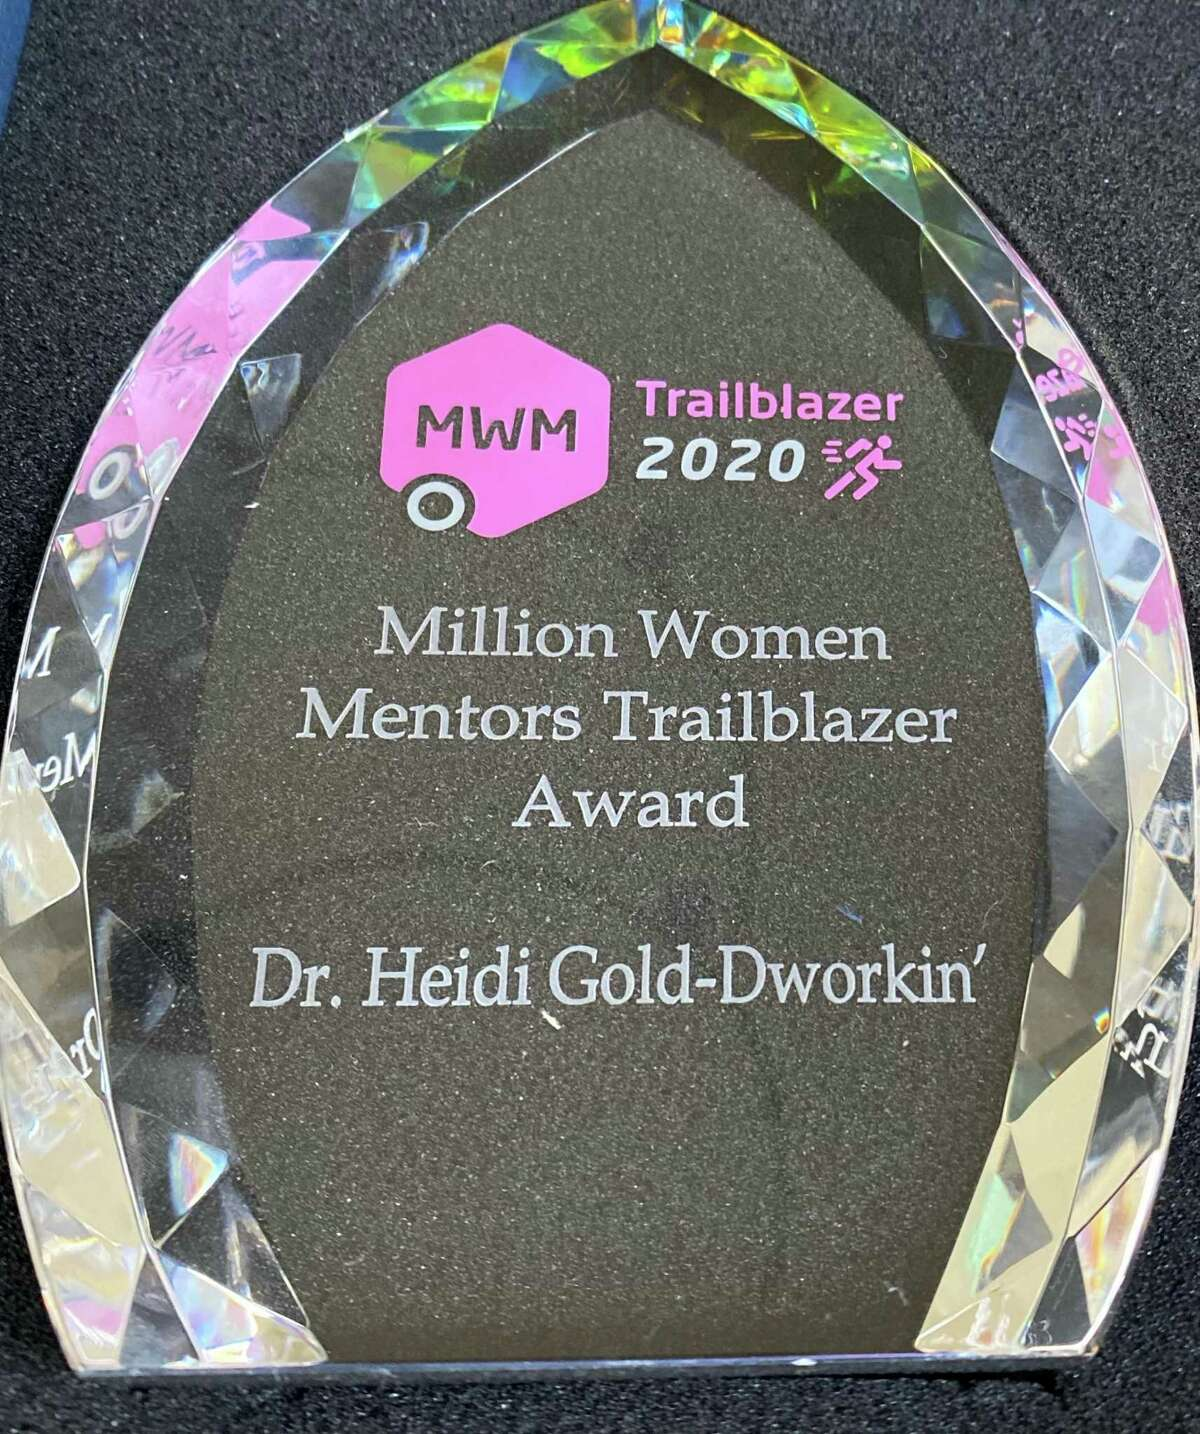 A national award that was received by Dr. Heidi Gold-Dworkin for her work in STEM.